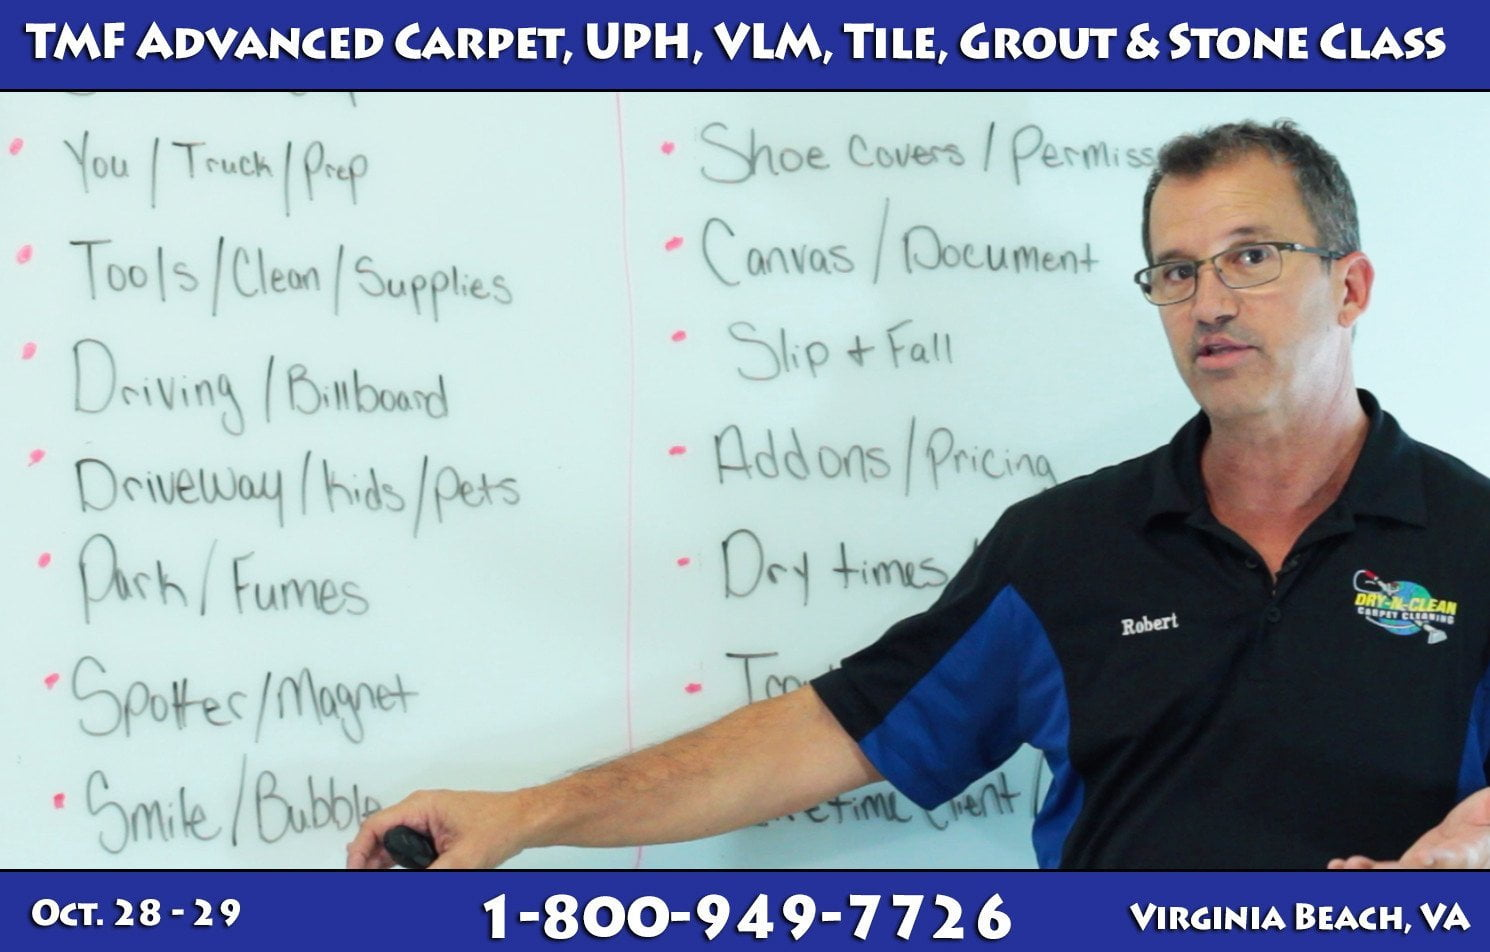 Advanced Carpet, UPH, VLM, Tile, Grout & Stone Class - TMF Store: Carpet Cleaning Equipment & Chemicals from TruckMountForums